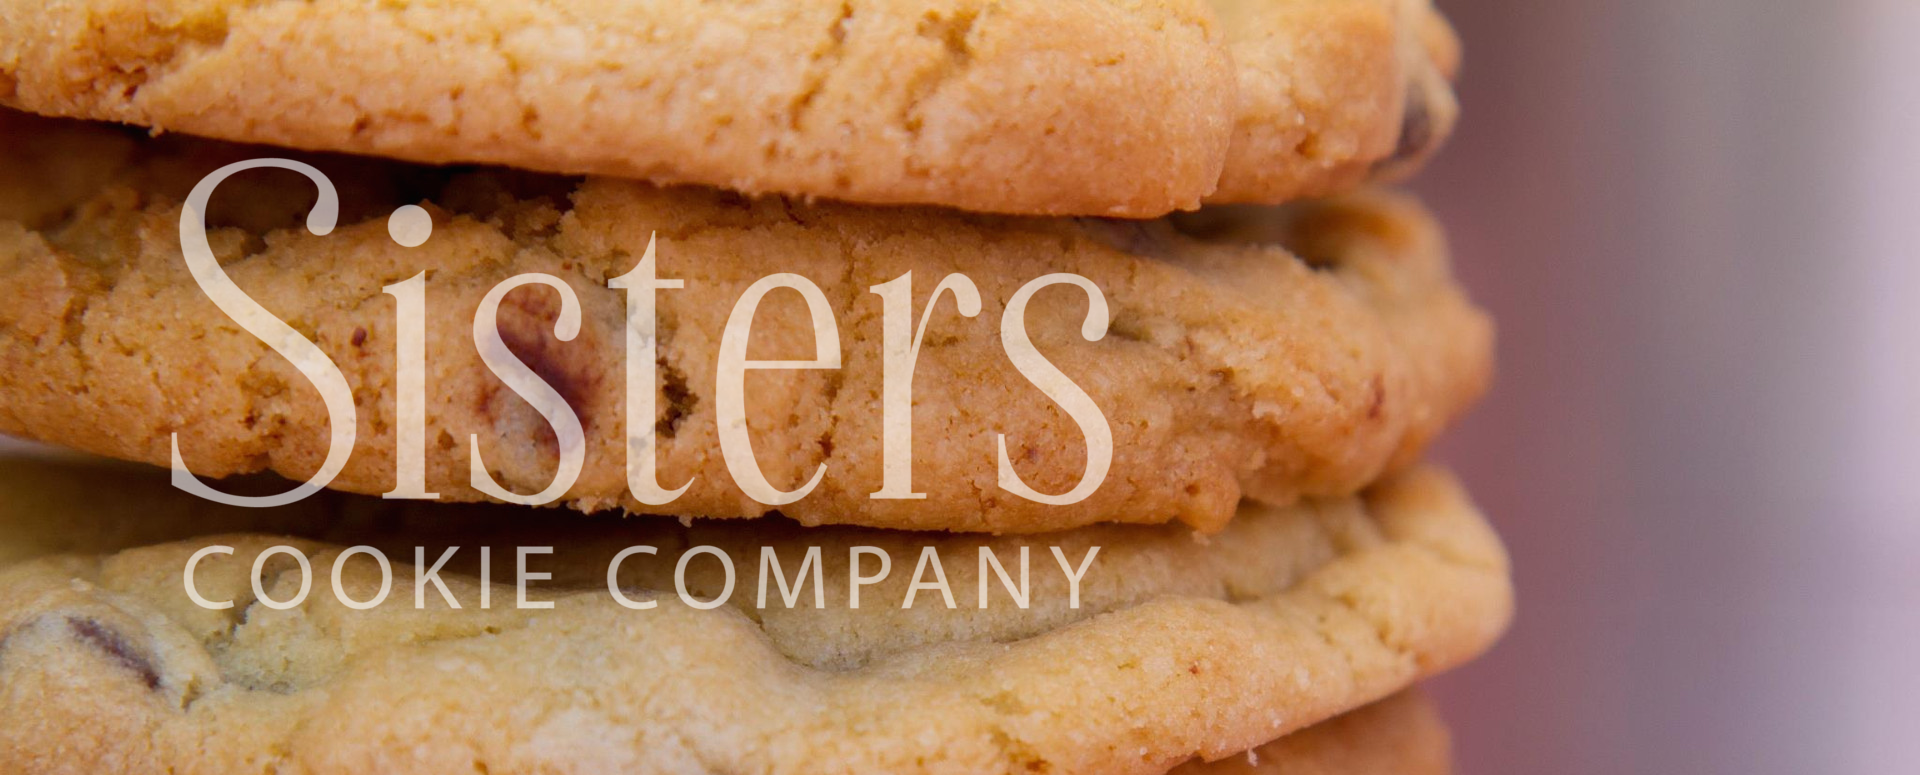 Sisters Cookie Company